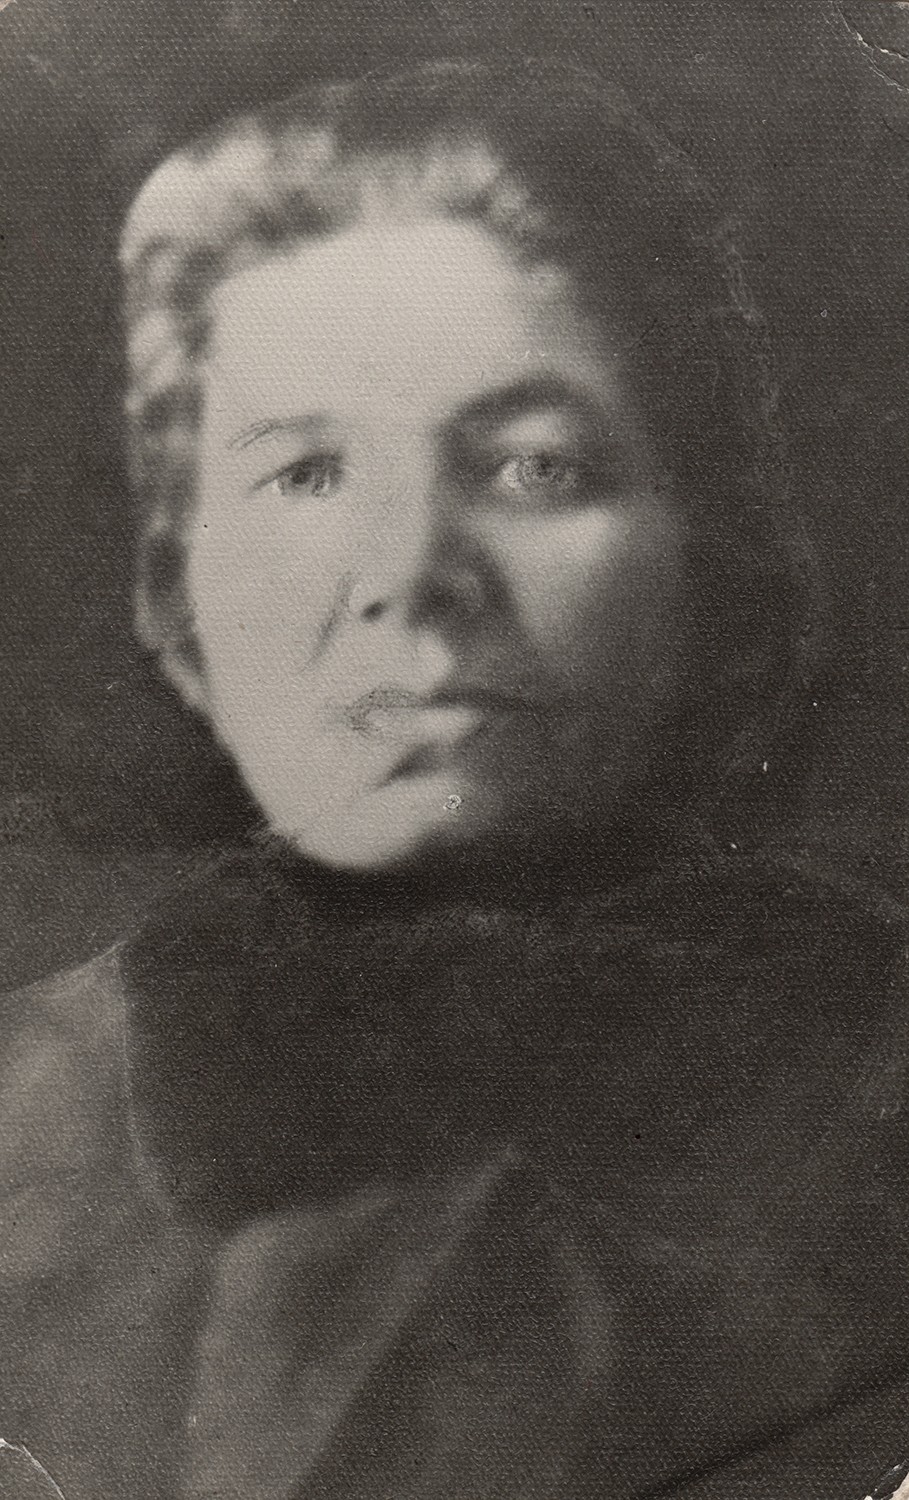 Khaya, Sverdlov's mother.  December 25, 1944